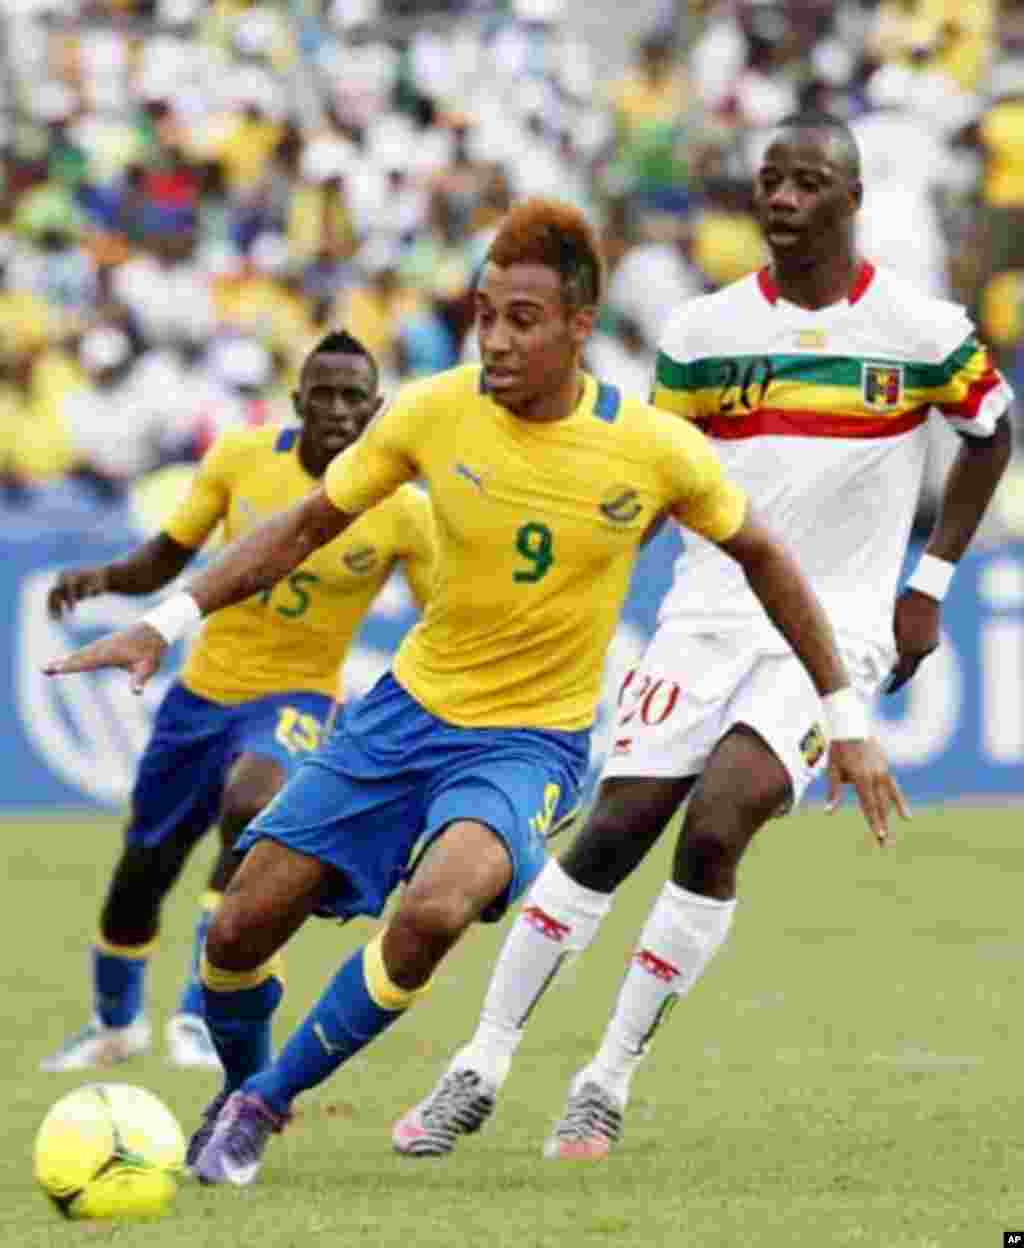 Gabon's Pierre Aubameyang (L) runs with the ball during their African Cup of Nations quarter-final soccer match against Mali at the Stade De L'Amitie Stadium in Gabon's capital Libreville, February 5, 2012.